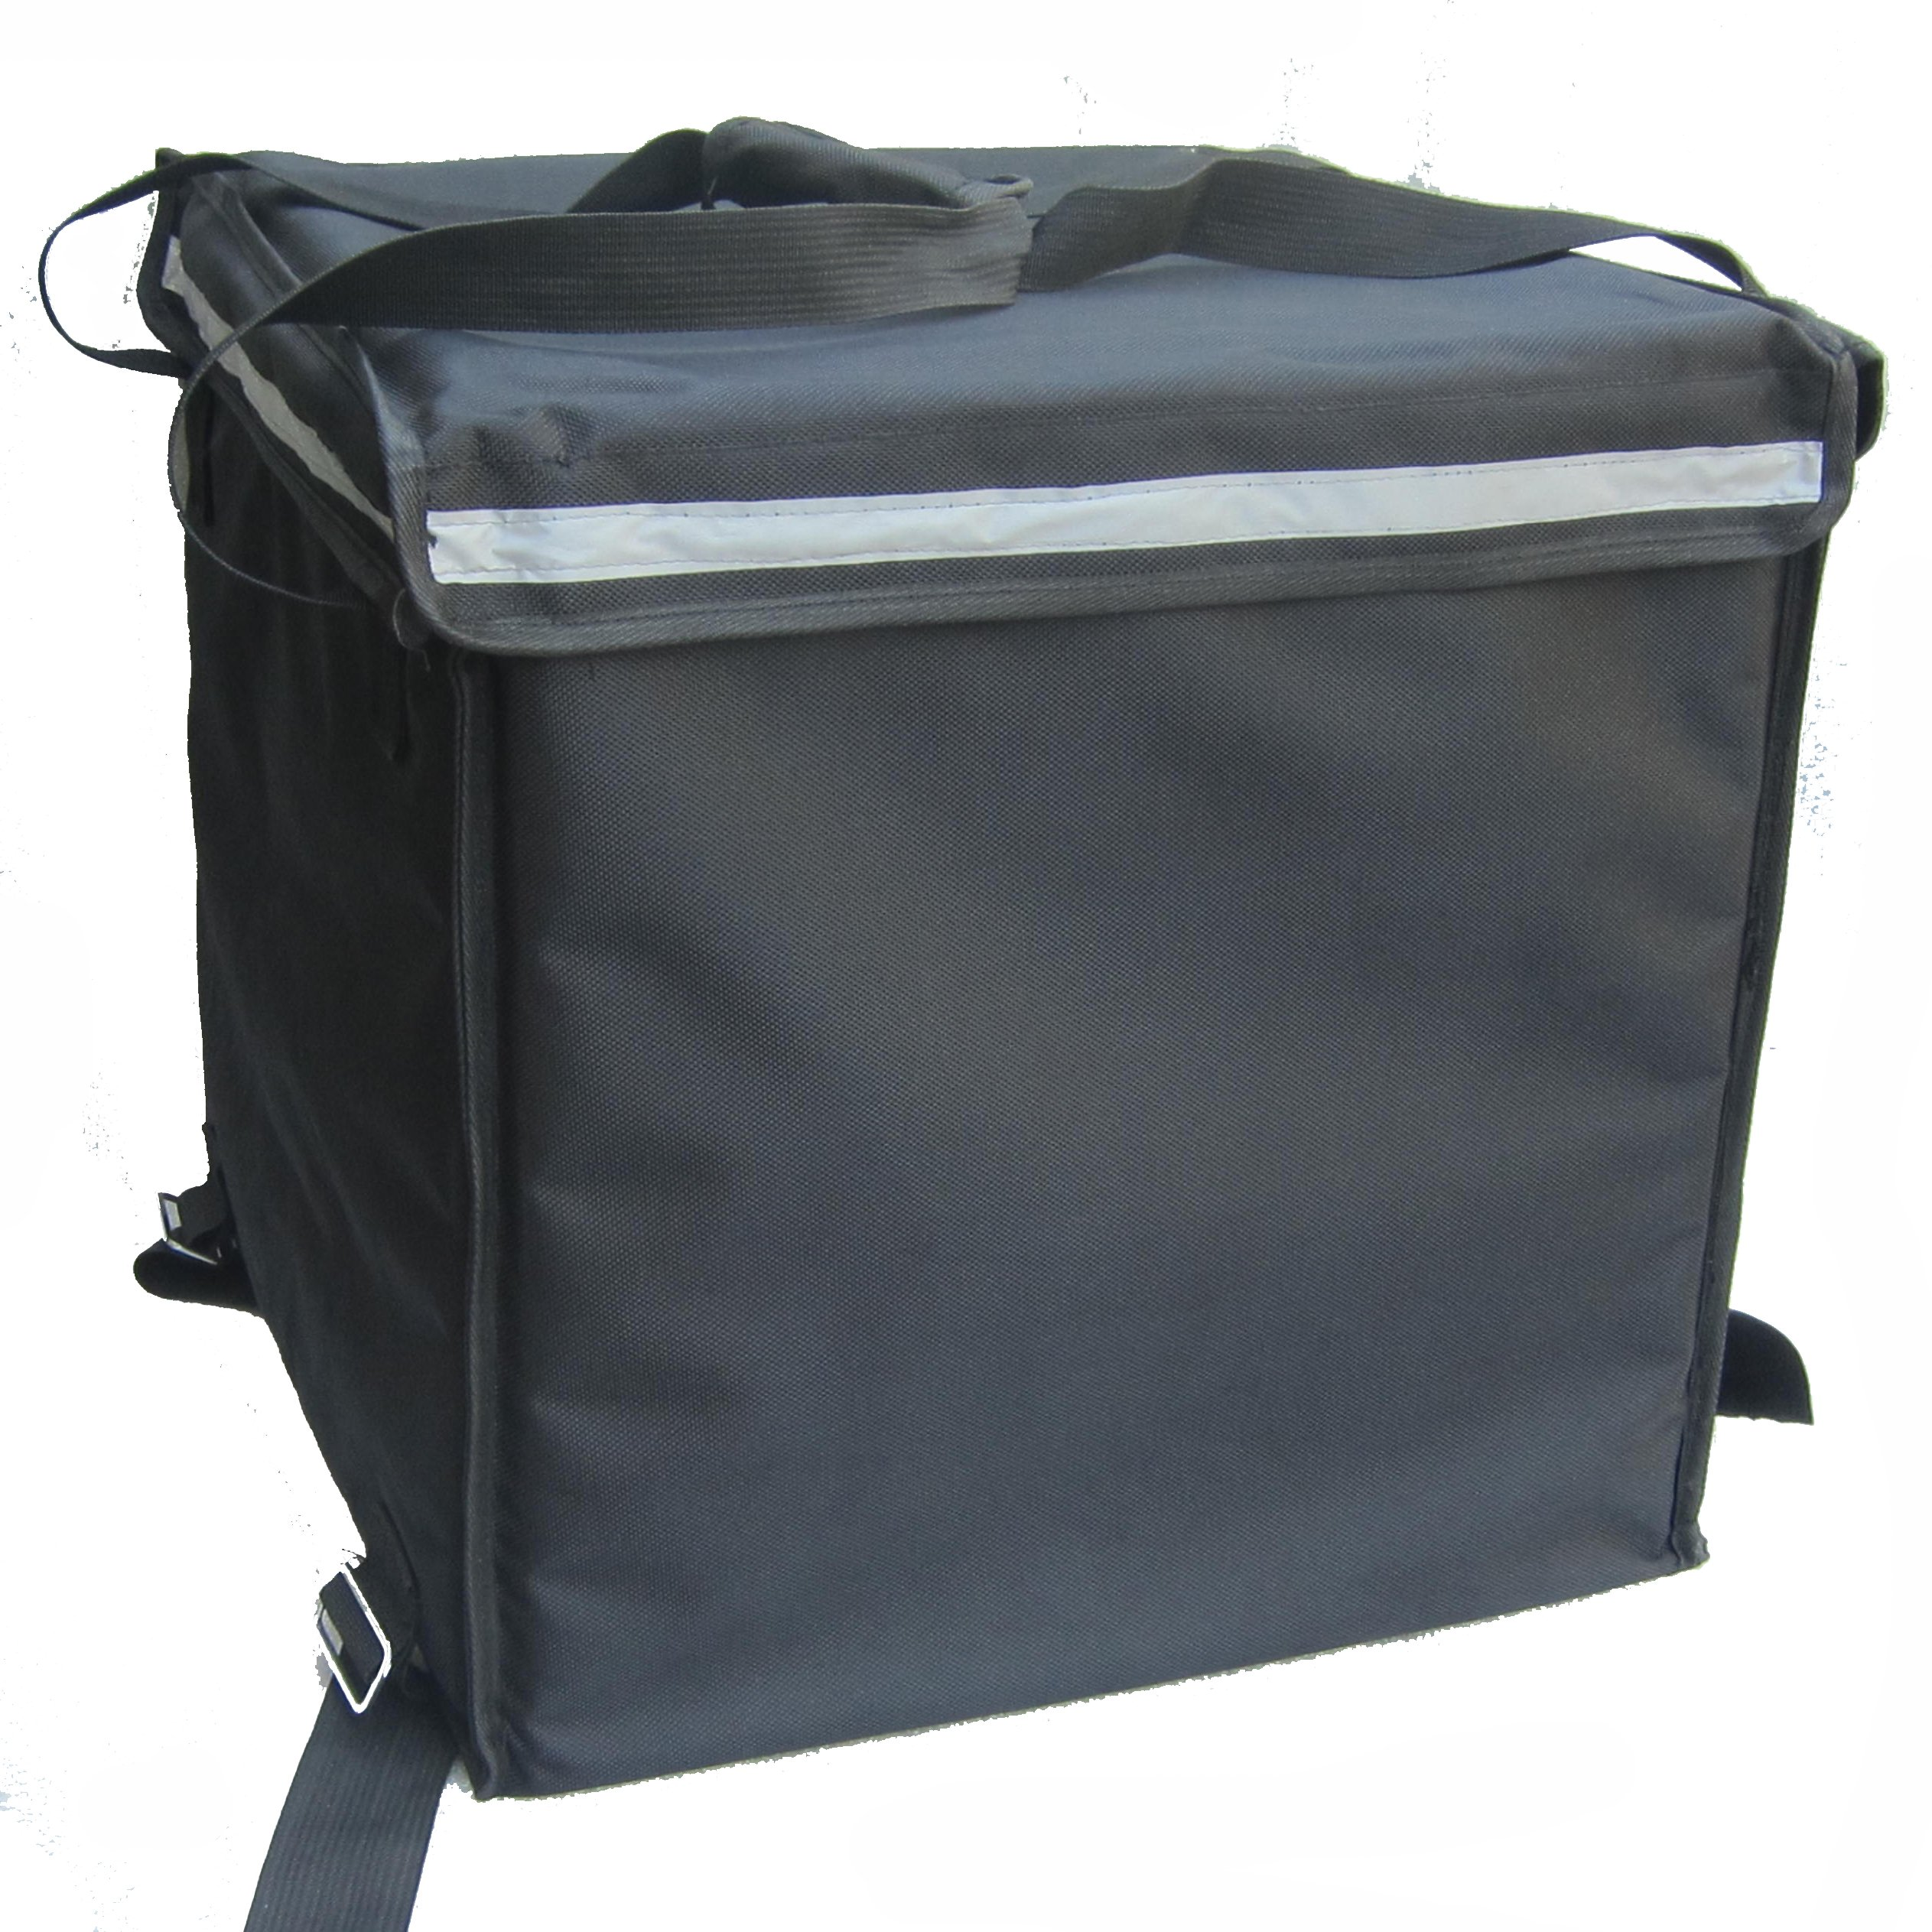 PK-92V: Large Rigid Heavy Duty Food Delivery Box for Motorcycle, Top Loading, 18'' L x 18'' W x 18'' H